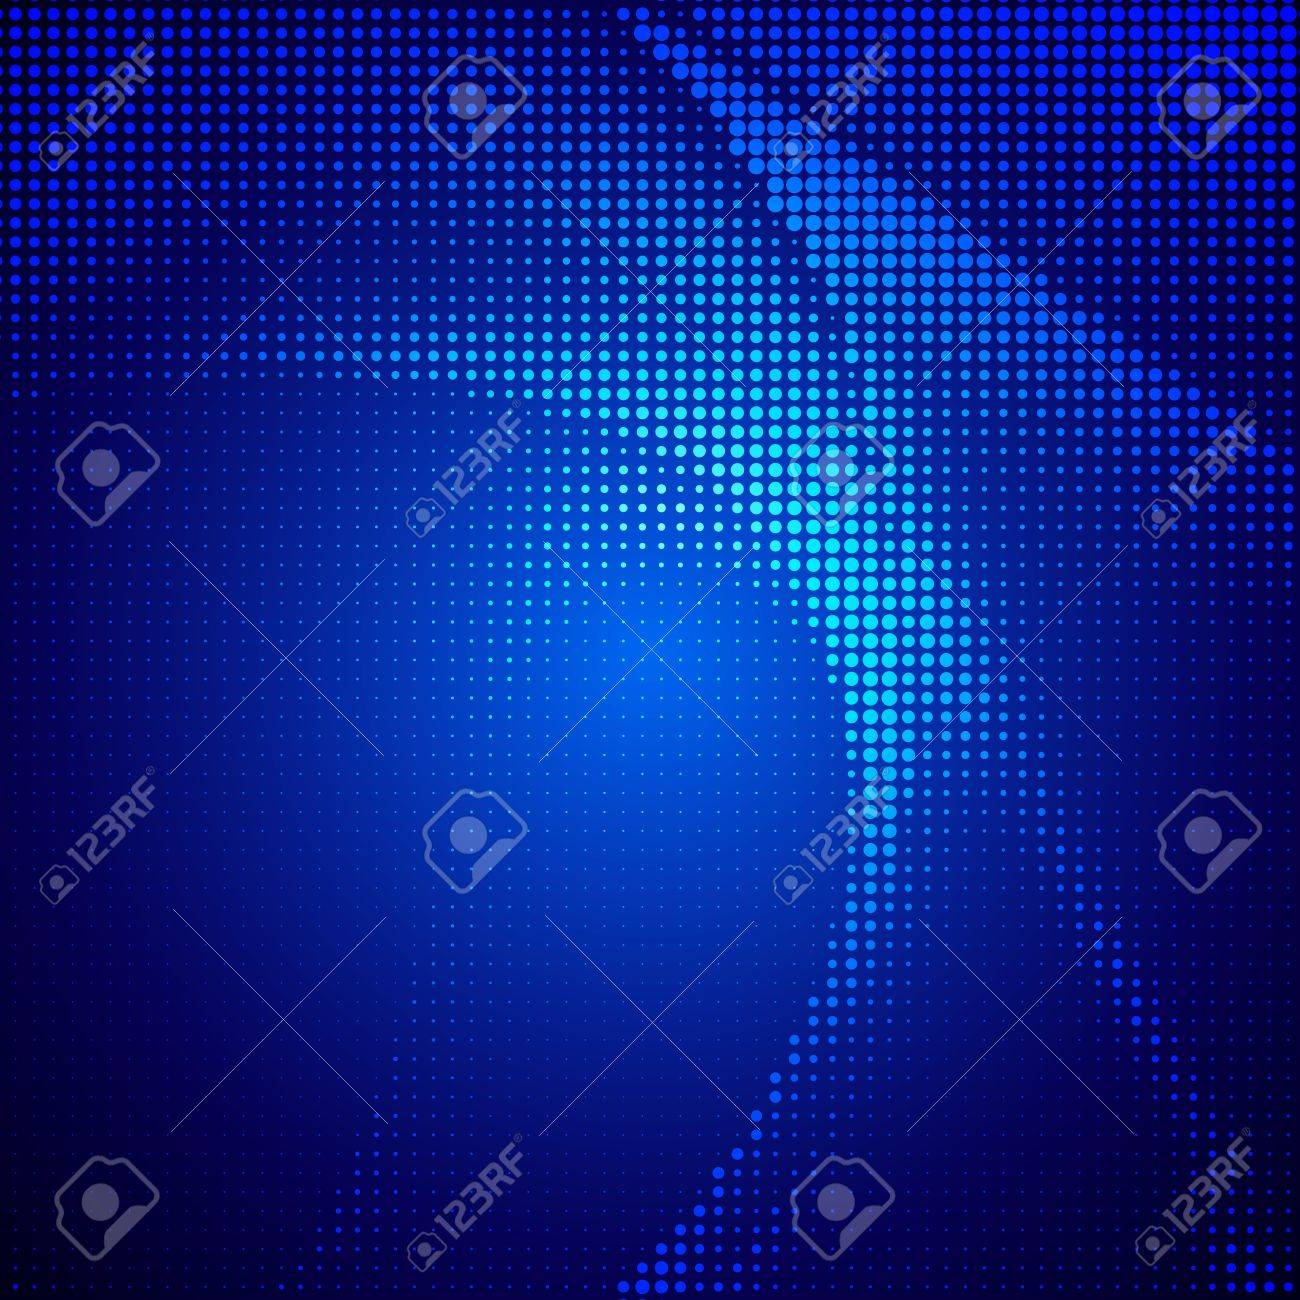 Abstract halftone lighting effects background Stock Vector - 19134146